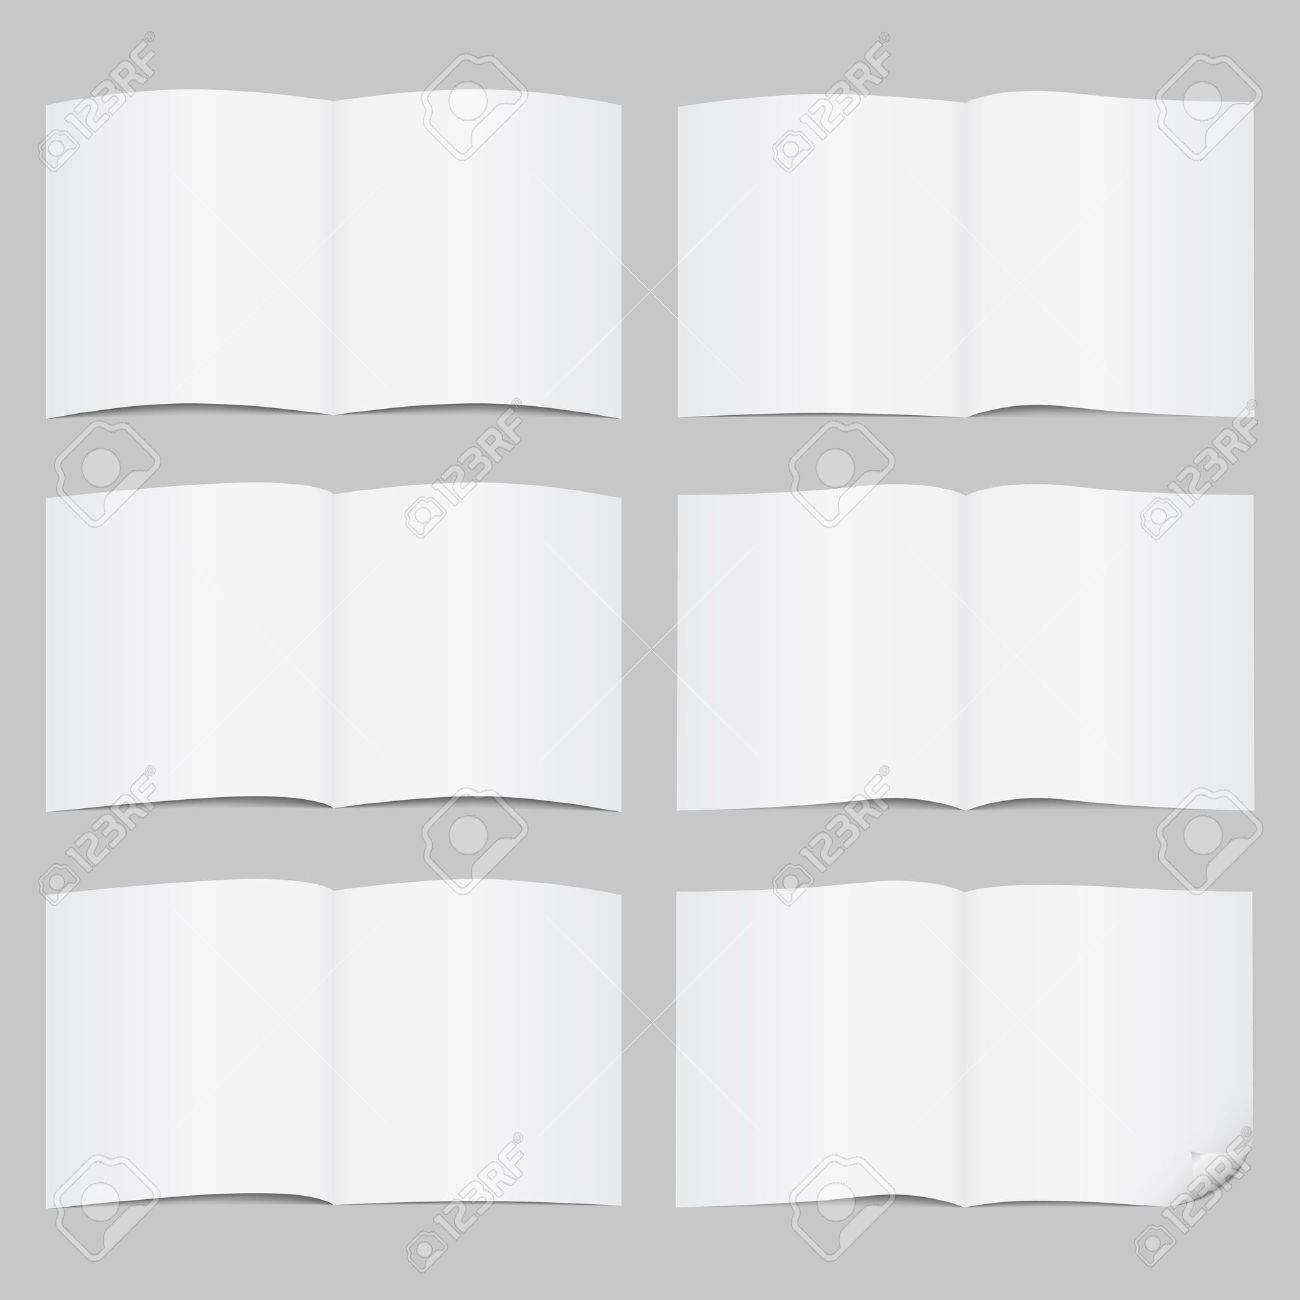 Set of open pages Stock Vector - 13307525